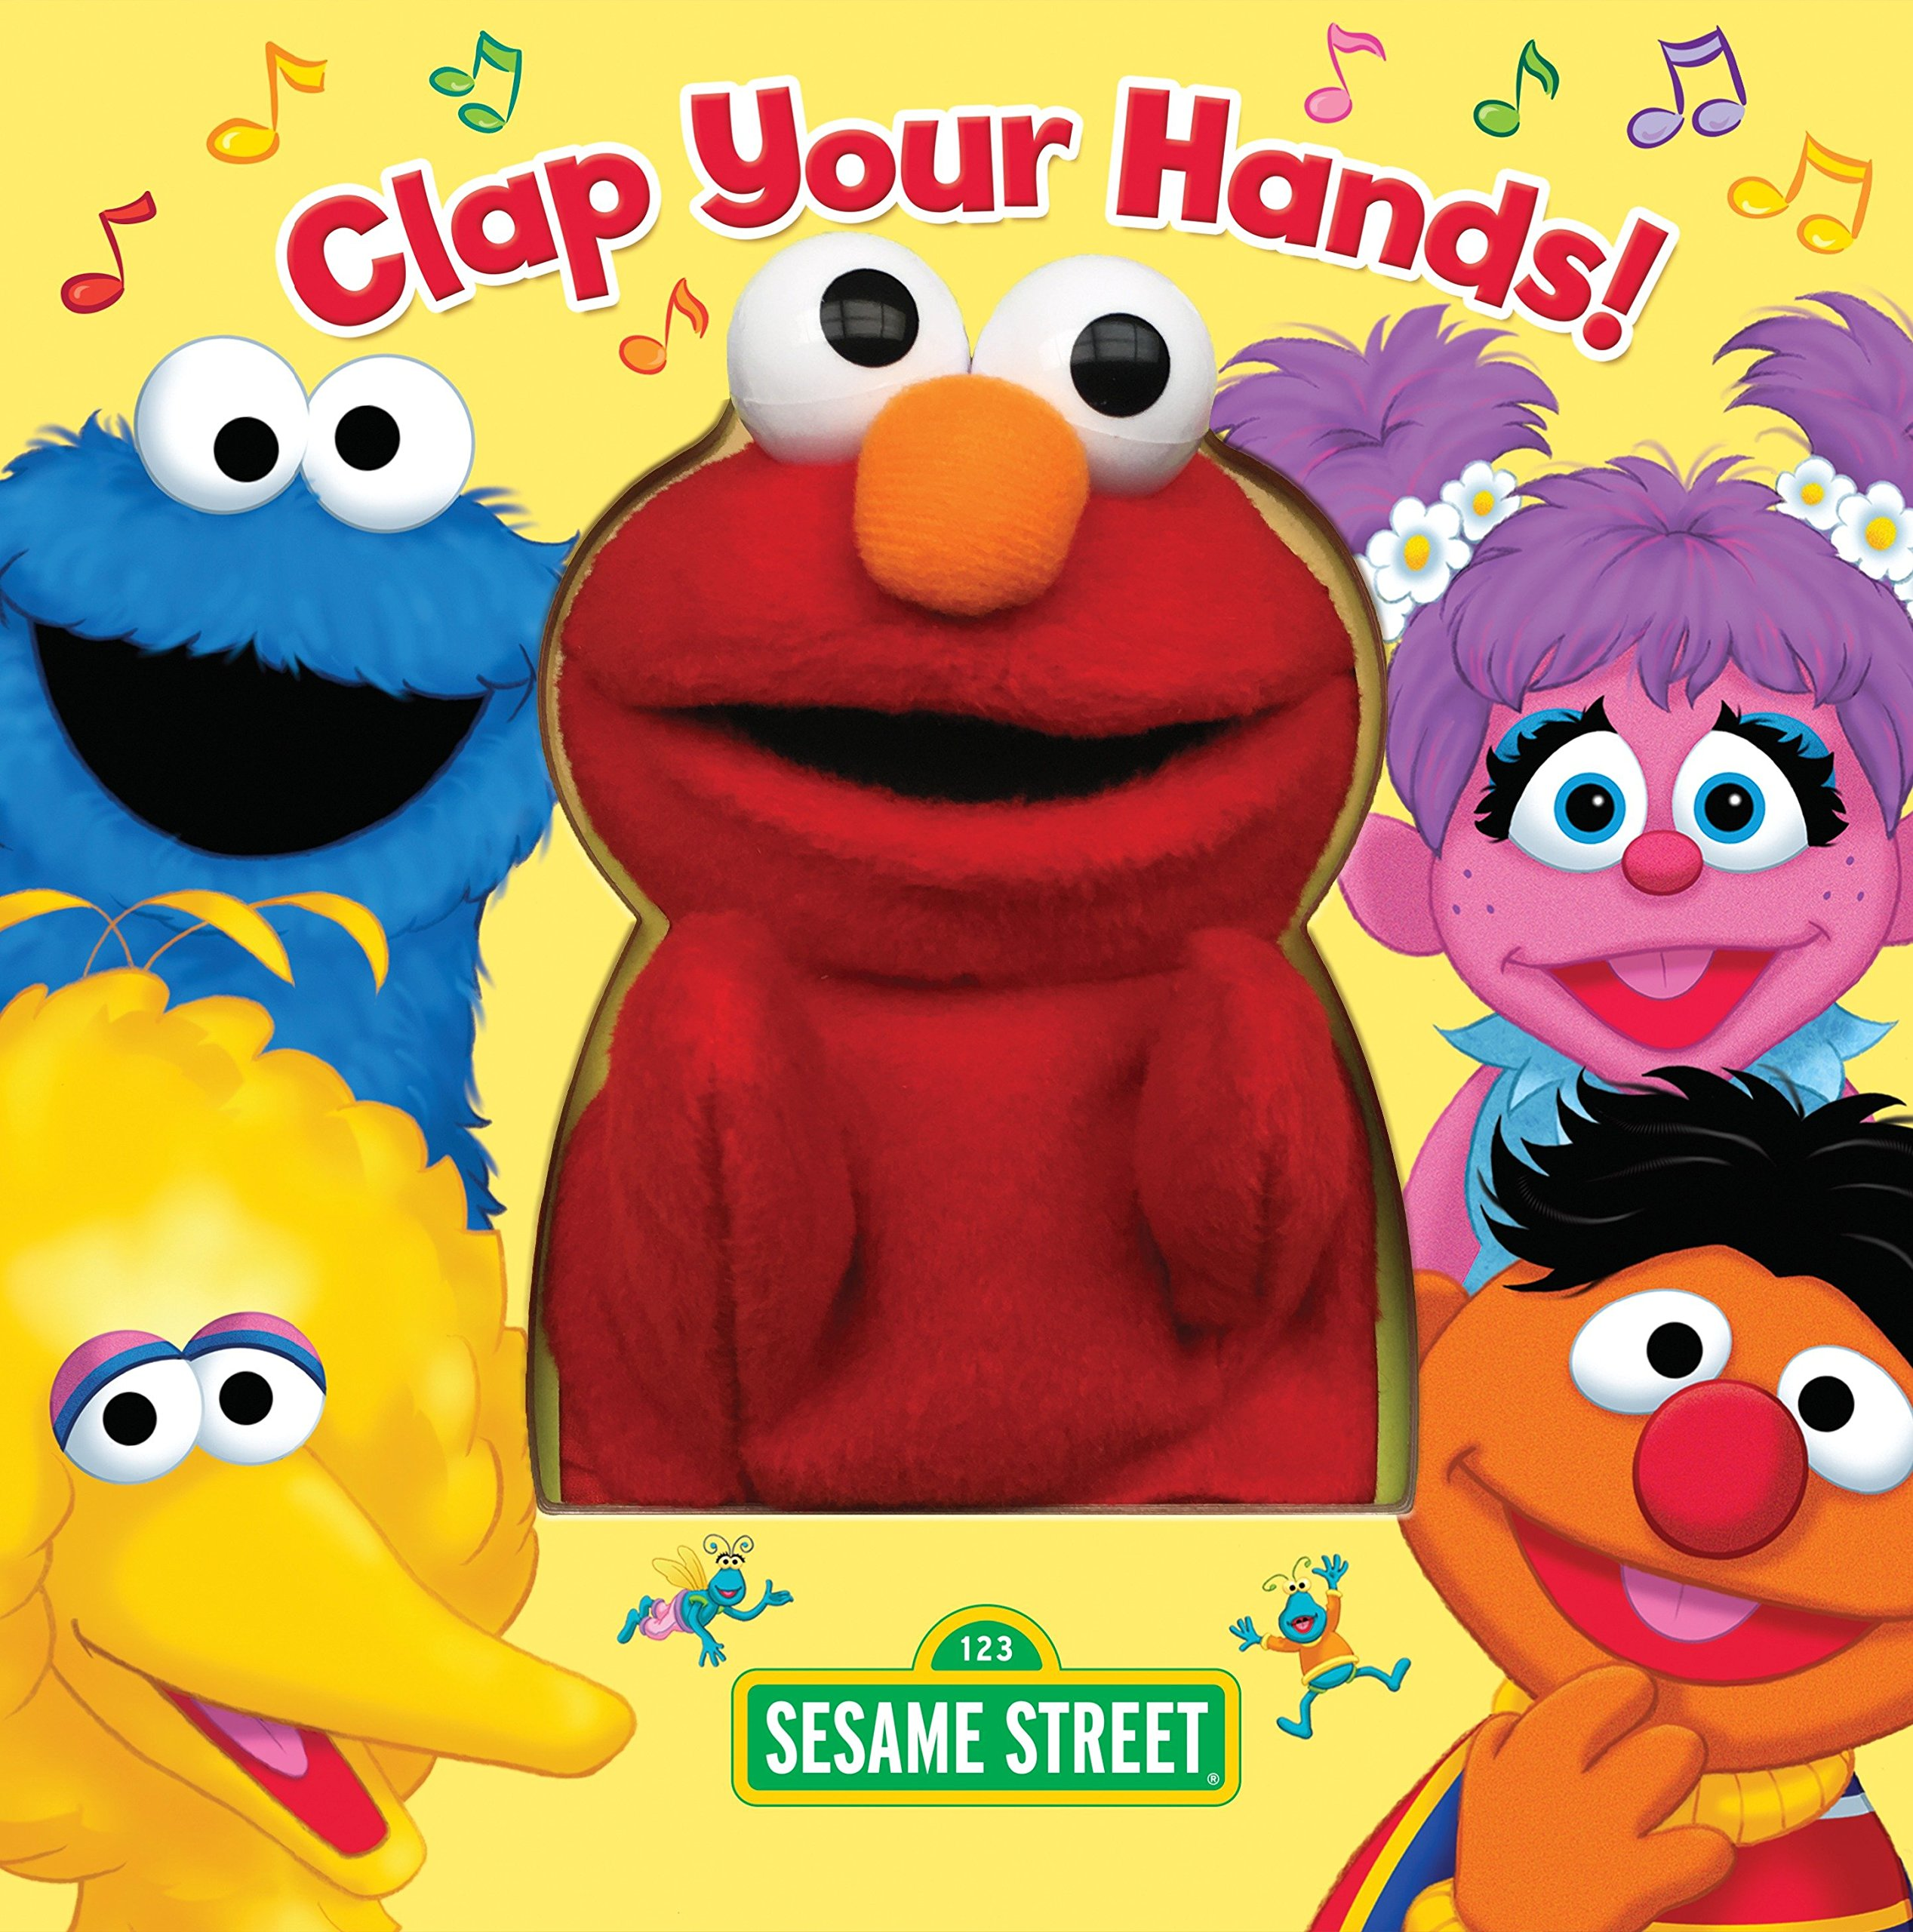 Amazon Com Clap Your Hands 9780375822261 Random House Random House Books Listen to i can make your hands clap now. amazon com clap your hands